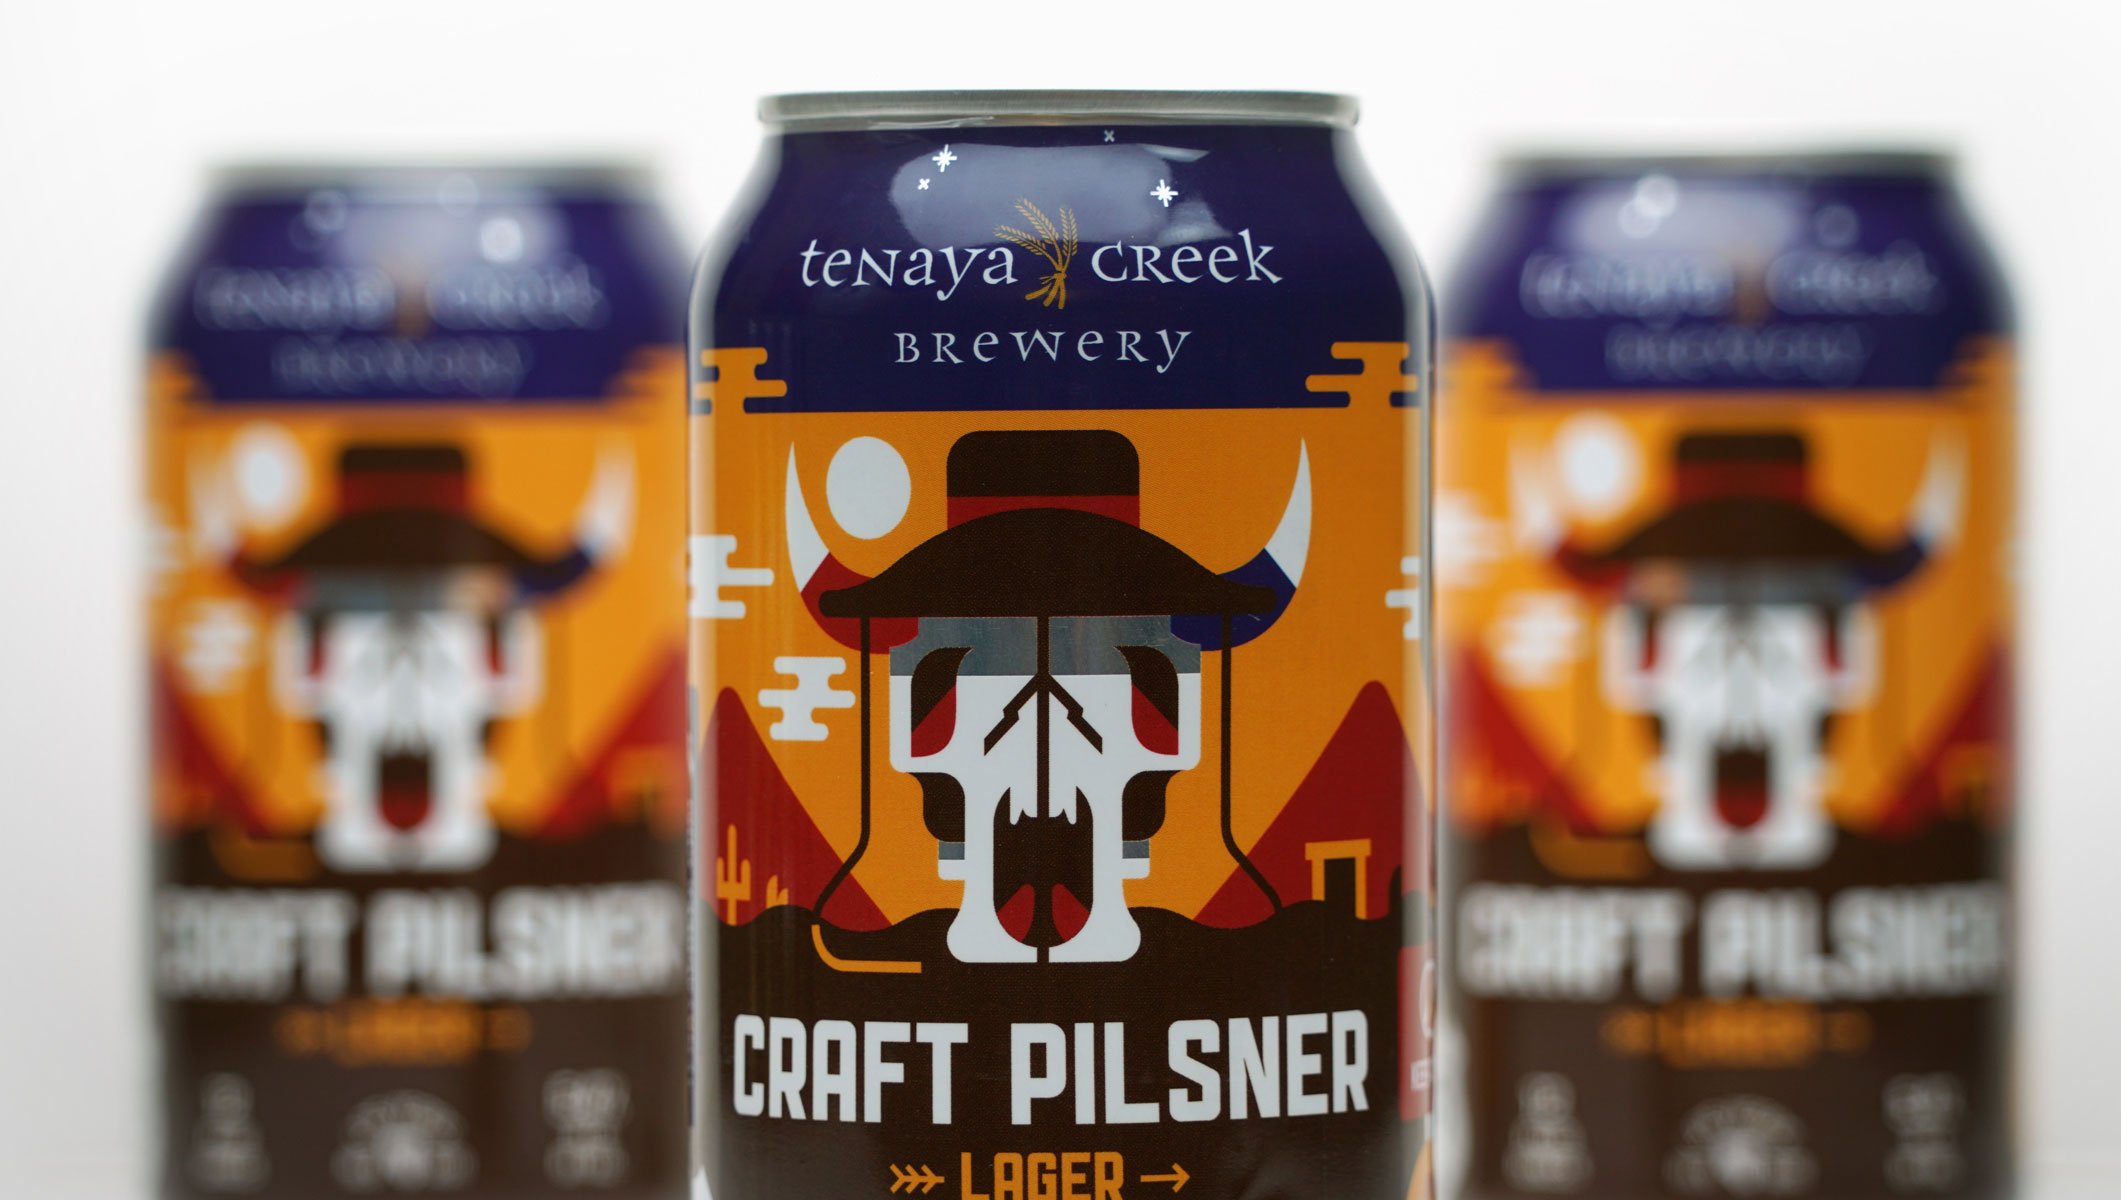 Tenaya Creek Brewery